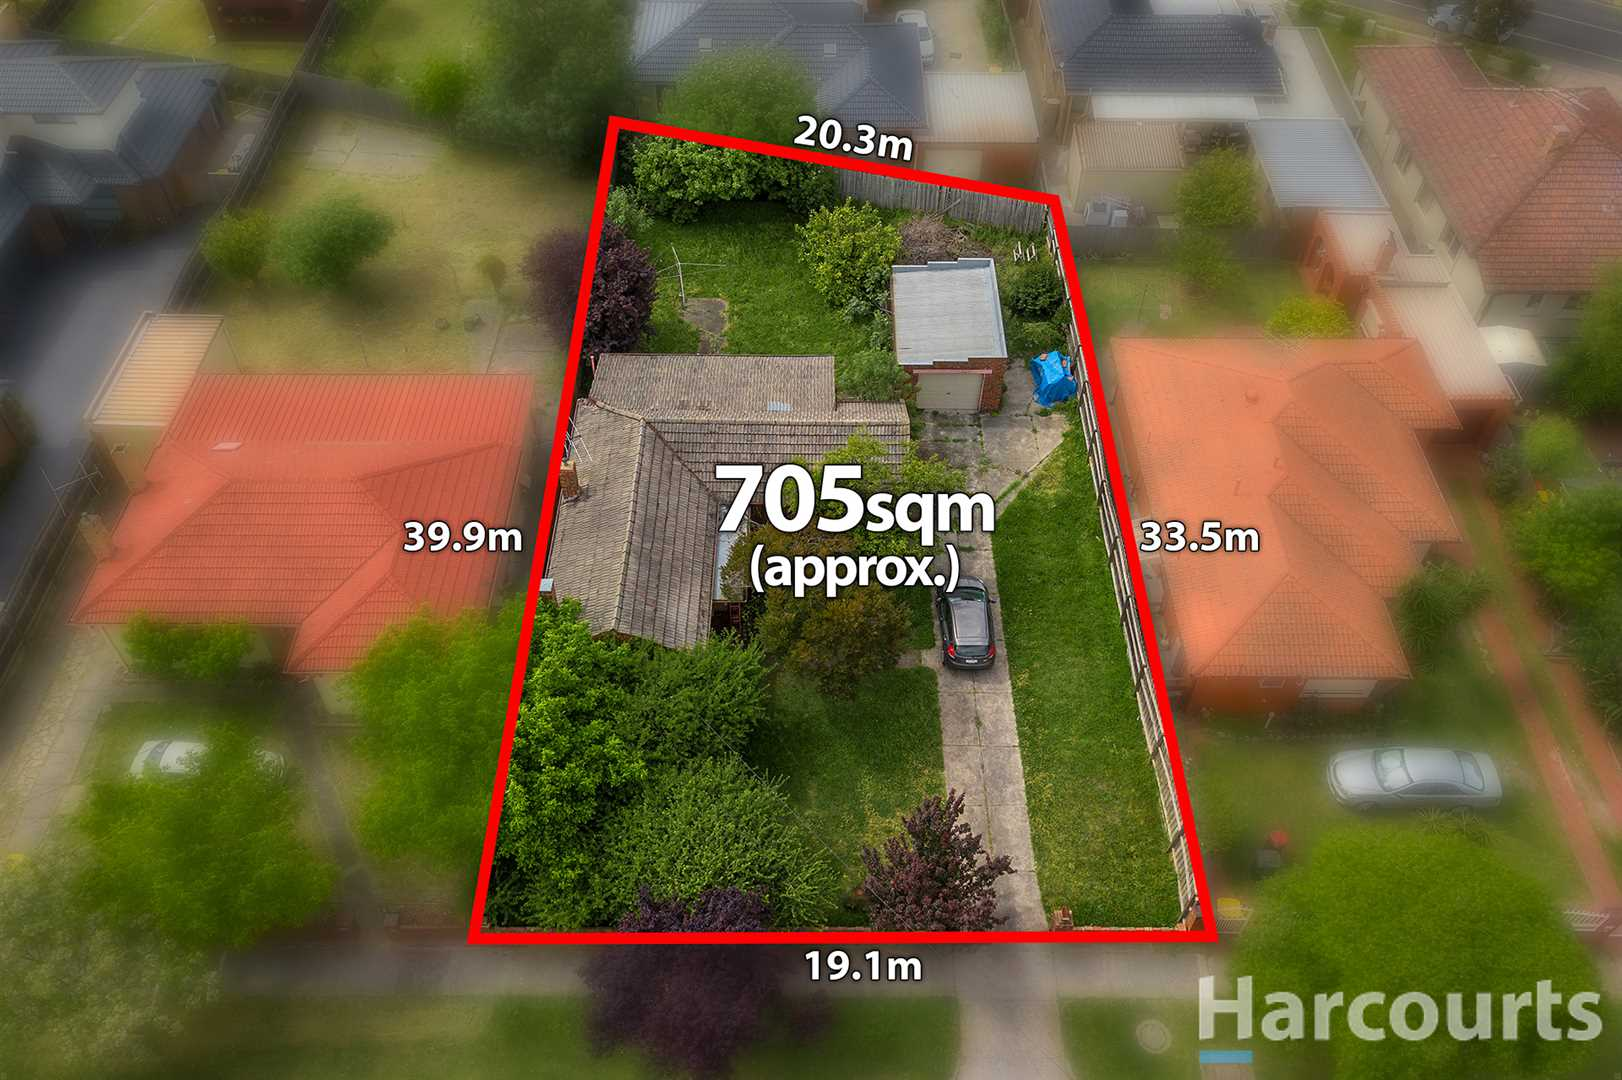 A Myriad of Possibilities on 704sqm approx.